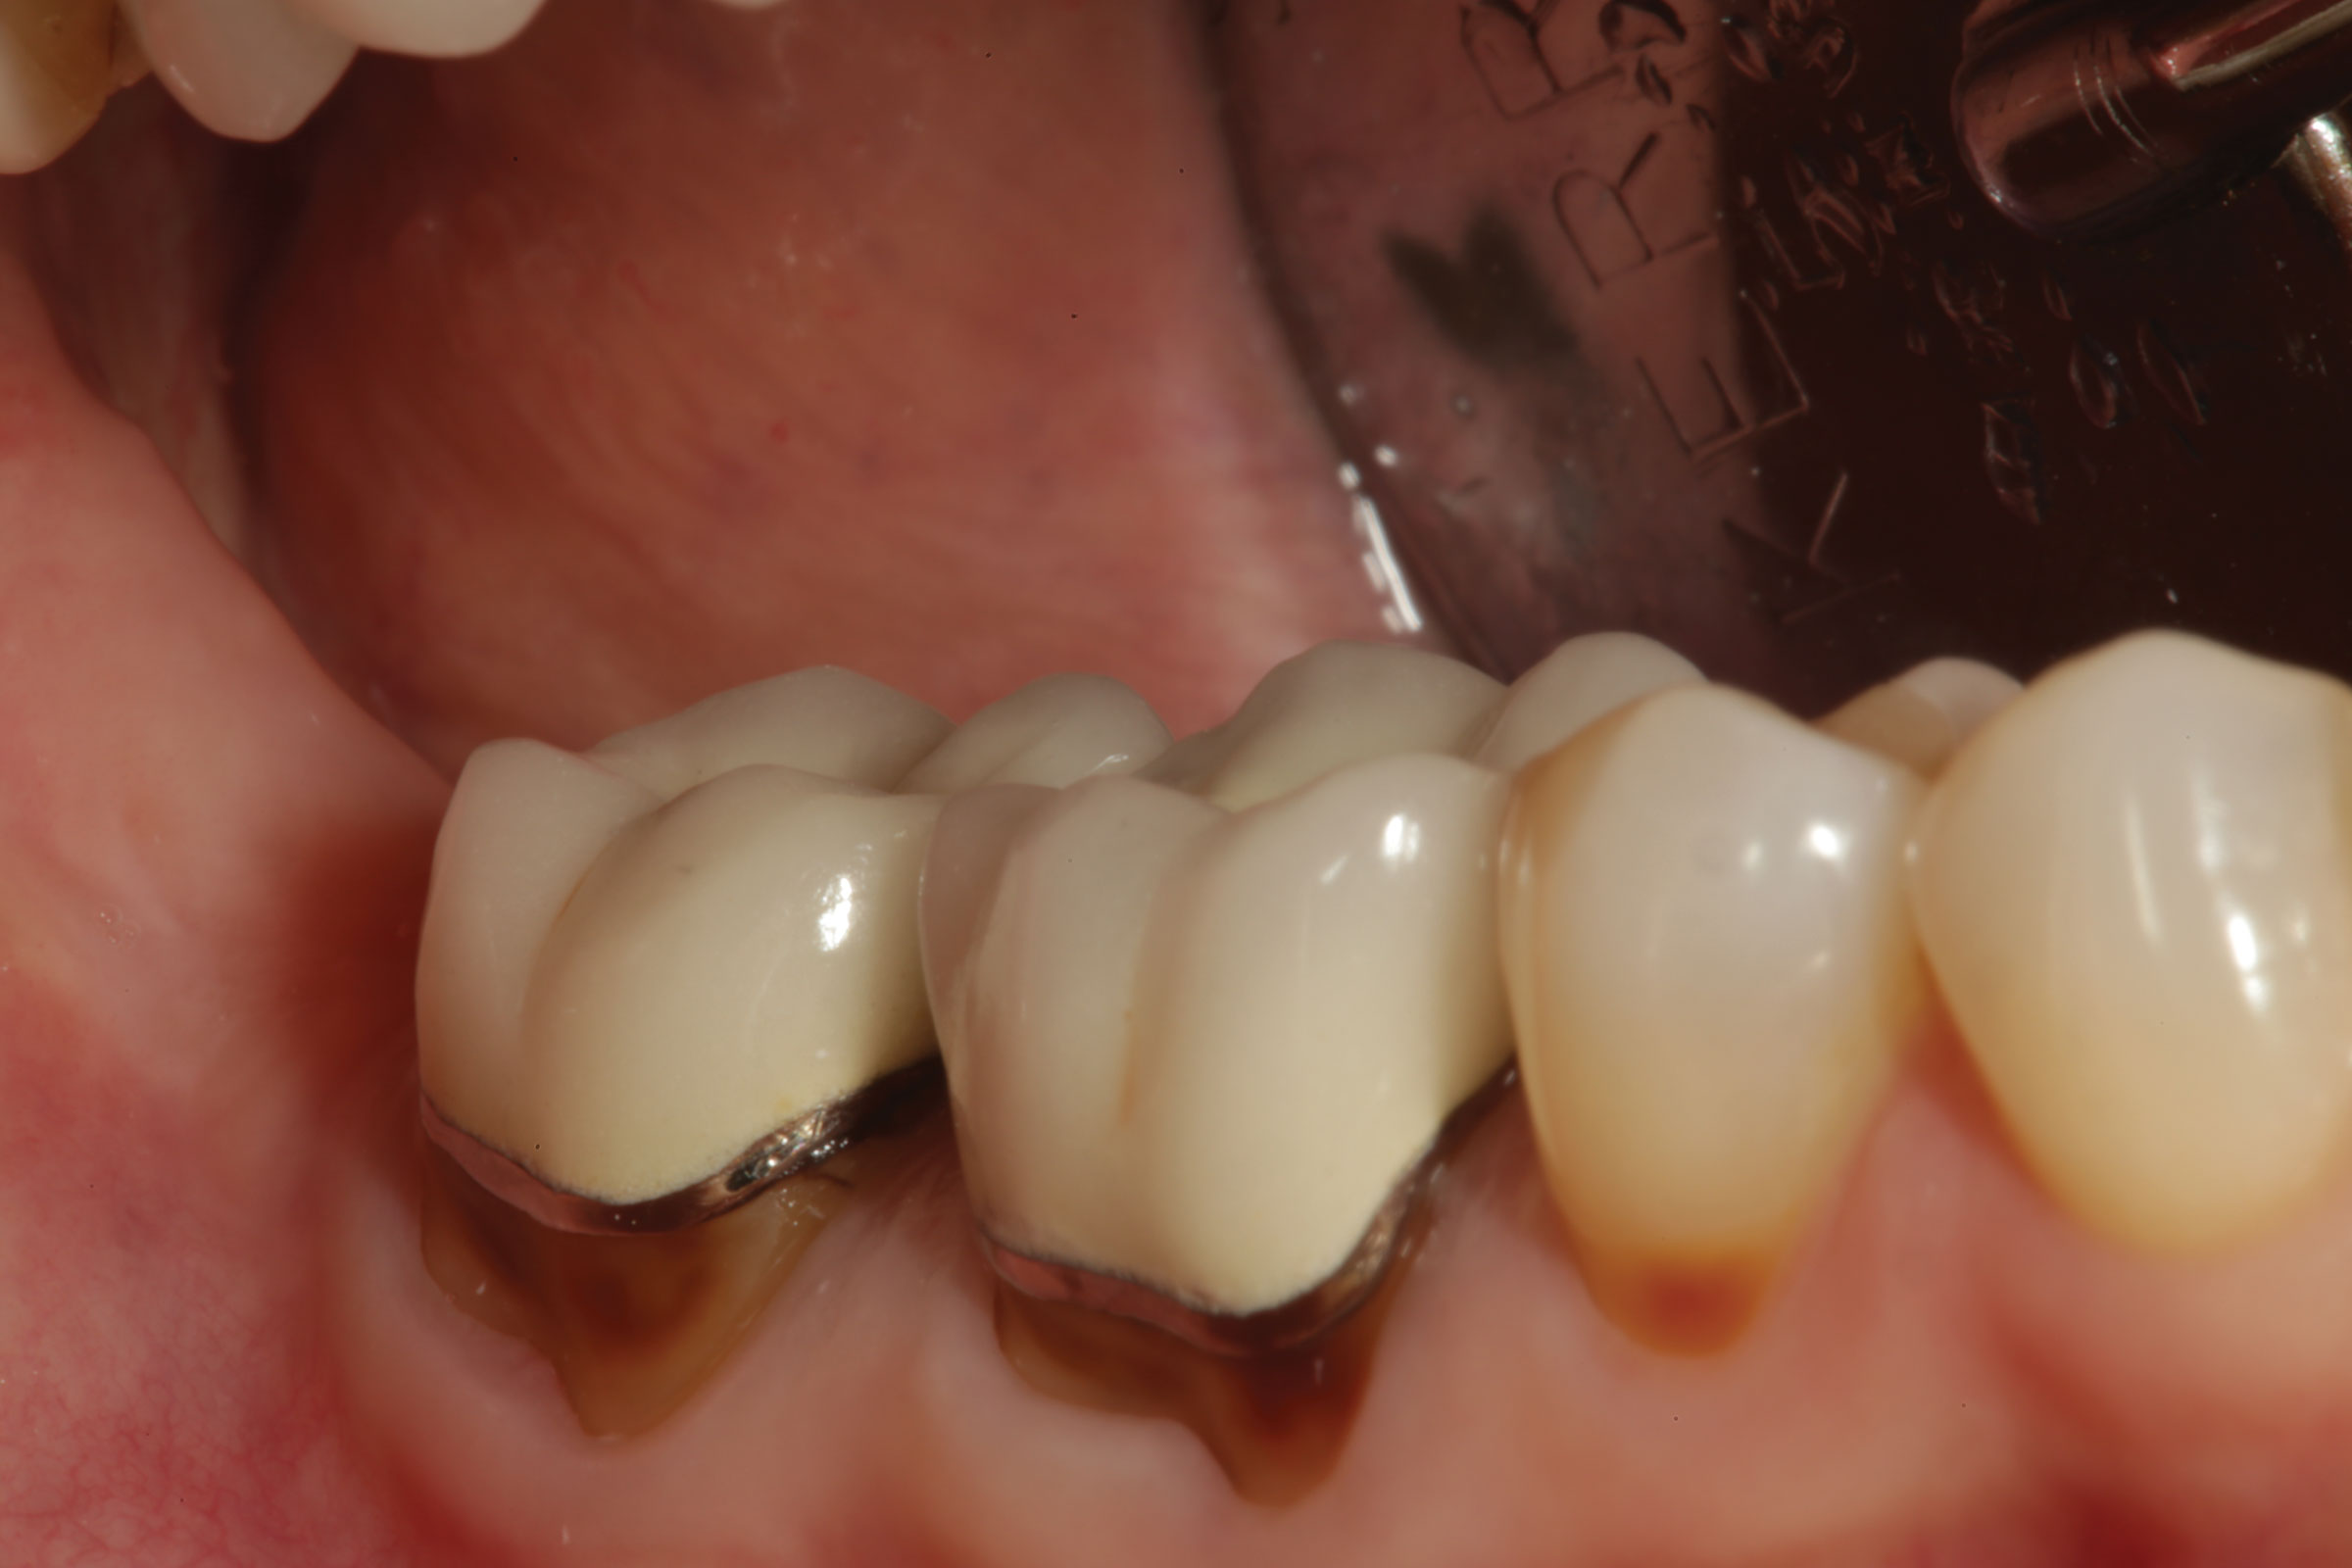 The Patient Presented With Old PFM Restorations On Teeth Nos 30 And 31 Recurrent Decay Facial Abfraction Necessitated Replacement